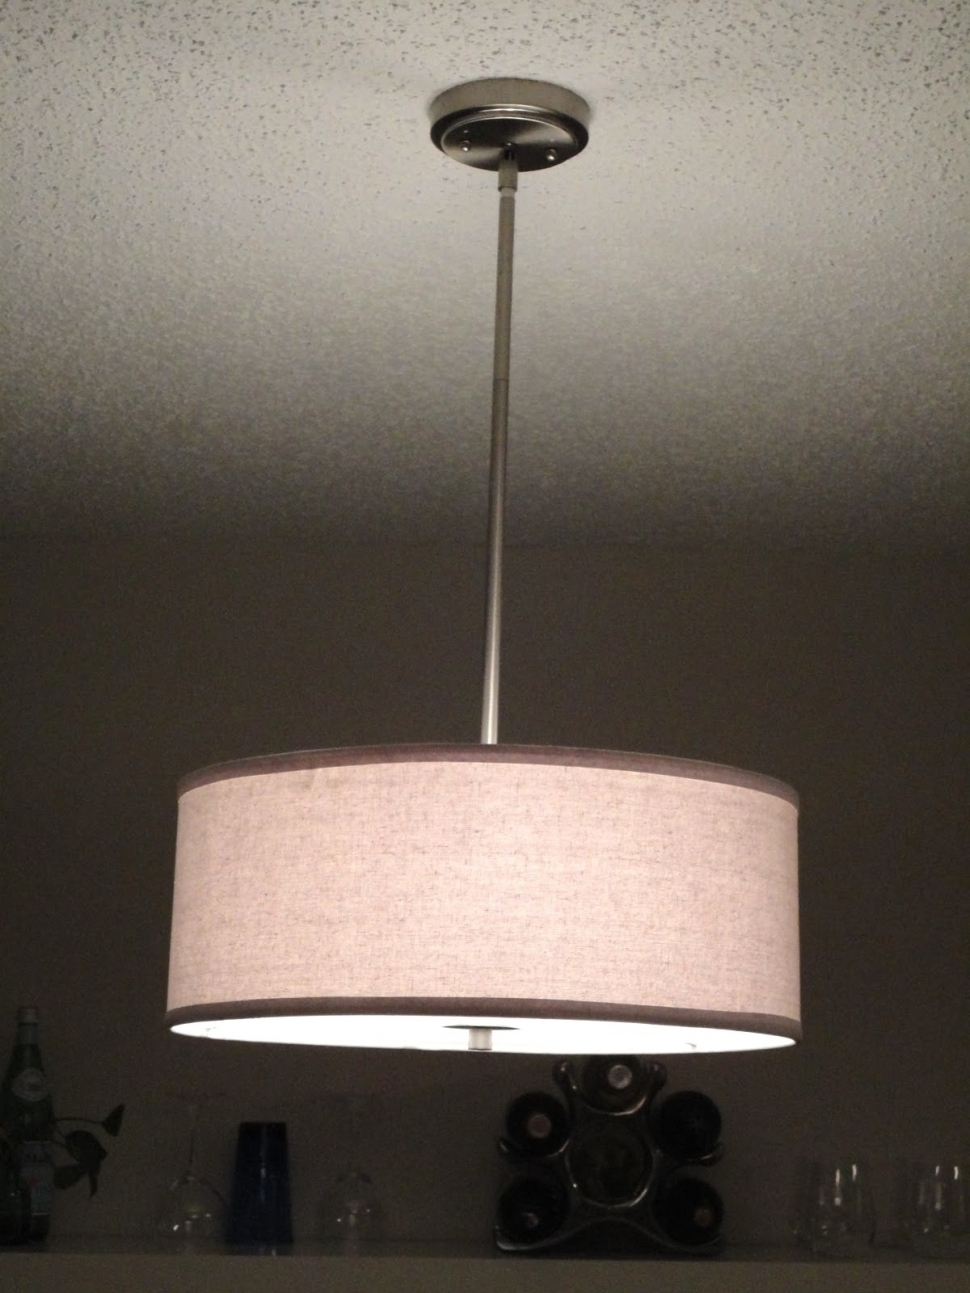 Best And Newest Outdoor Ceiling Light With Electrical Outlet Pertaining To Electrical Wiring : Electrical Inspection Outdoor Ceiling Light (View 9 of 20)